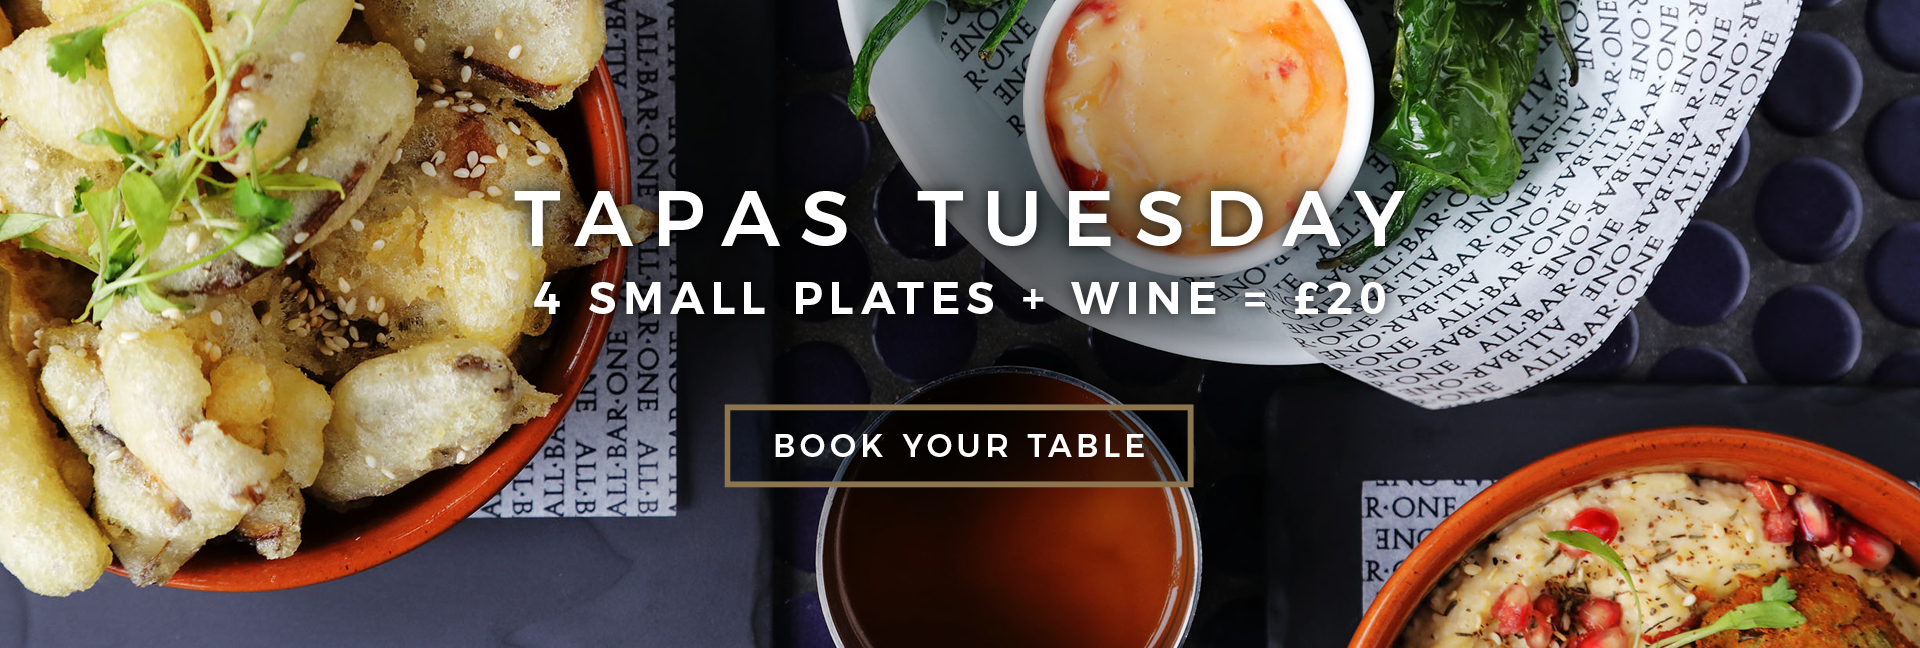 Tapas Tuesday at All Bar One Byward Street - Book now